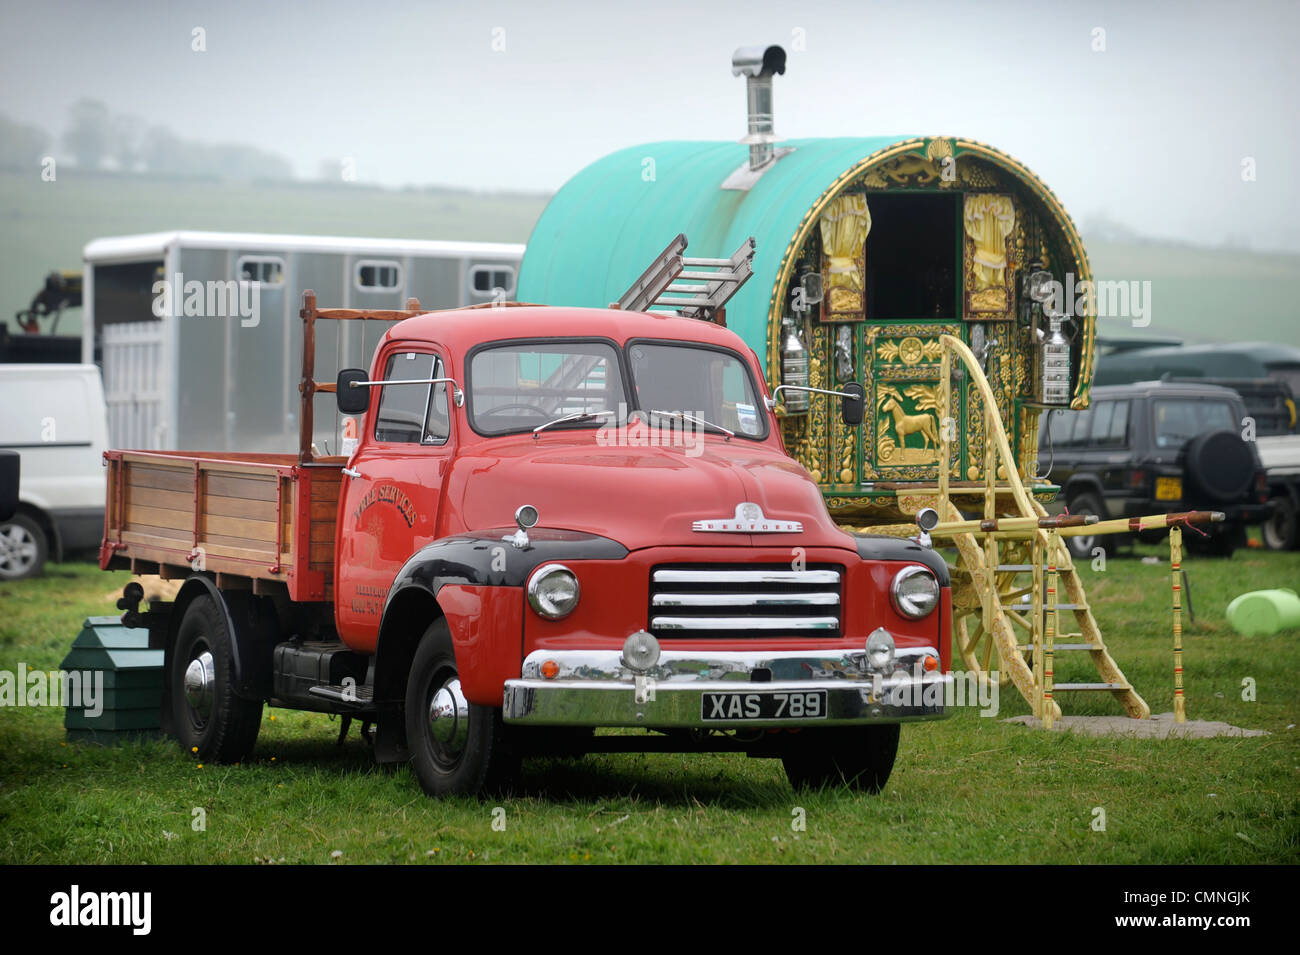 A classic truck and a decorative horse drawn caravan or Gypsy wagon at the Stow-on-the-Wold horse fair May 2009 - Stock Image